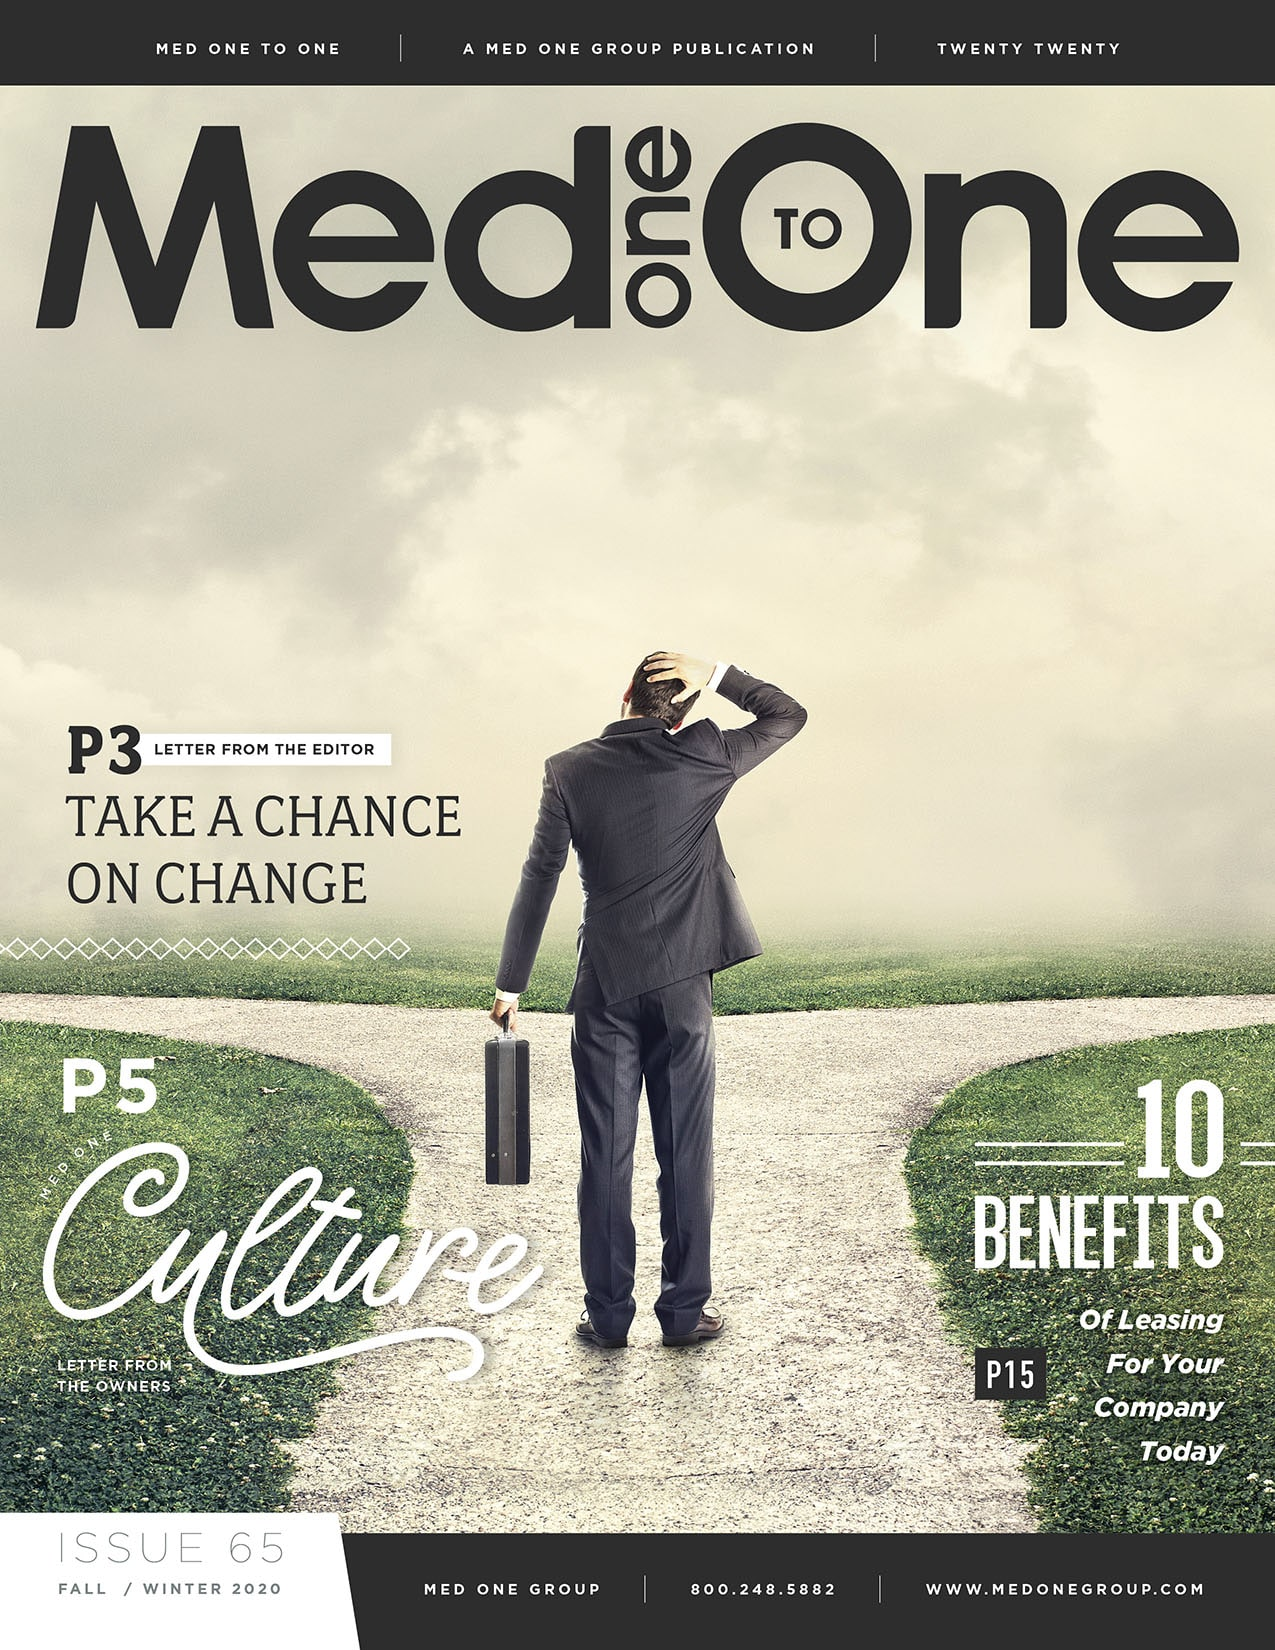 Med One to One Issue 65 Cover